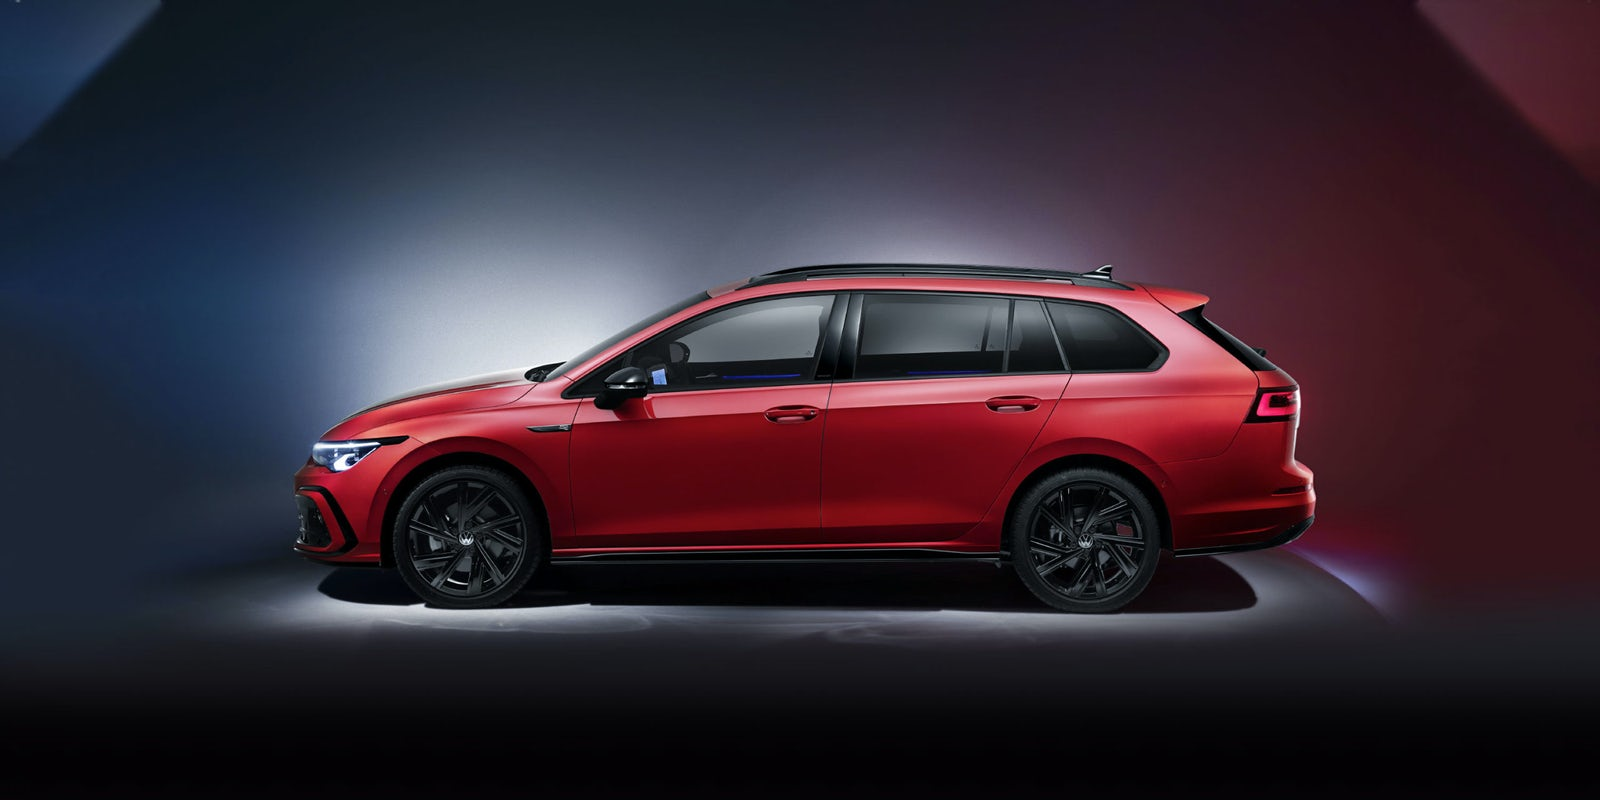 2021 Vw Golf Estate Revealed Price Specs And Release Date Carwow